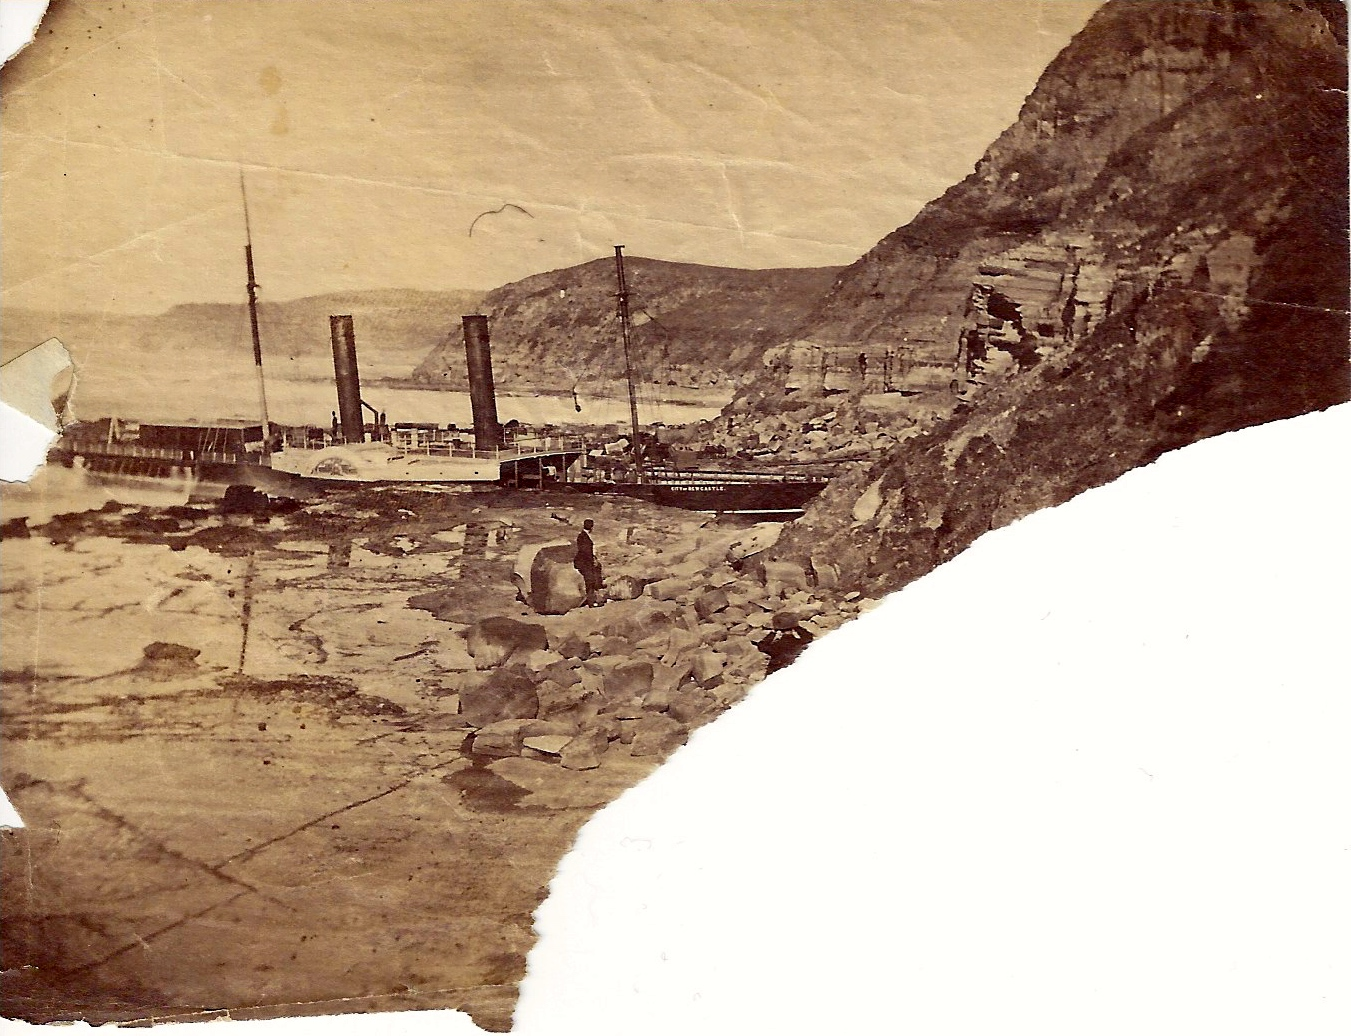 Shipwreck of the City of Newcastle, 1878 (Photo Credit: Digitised by Anne Glennie from Glennie Family Albums) Click for larger view